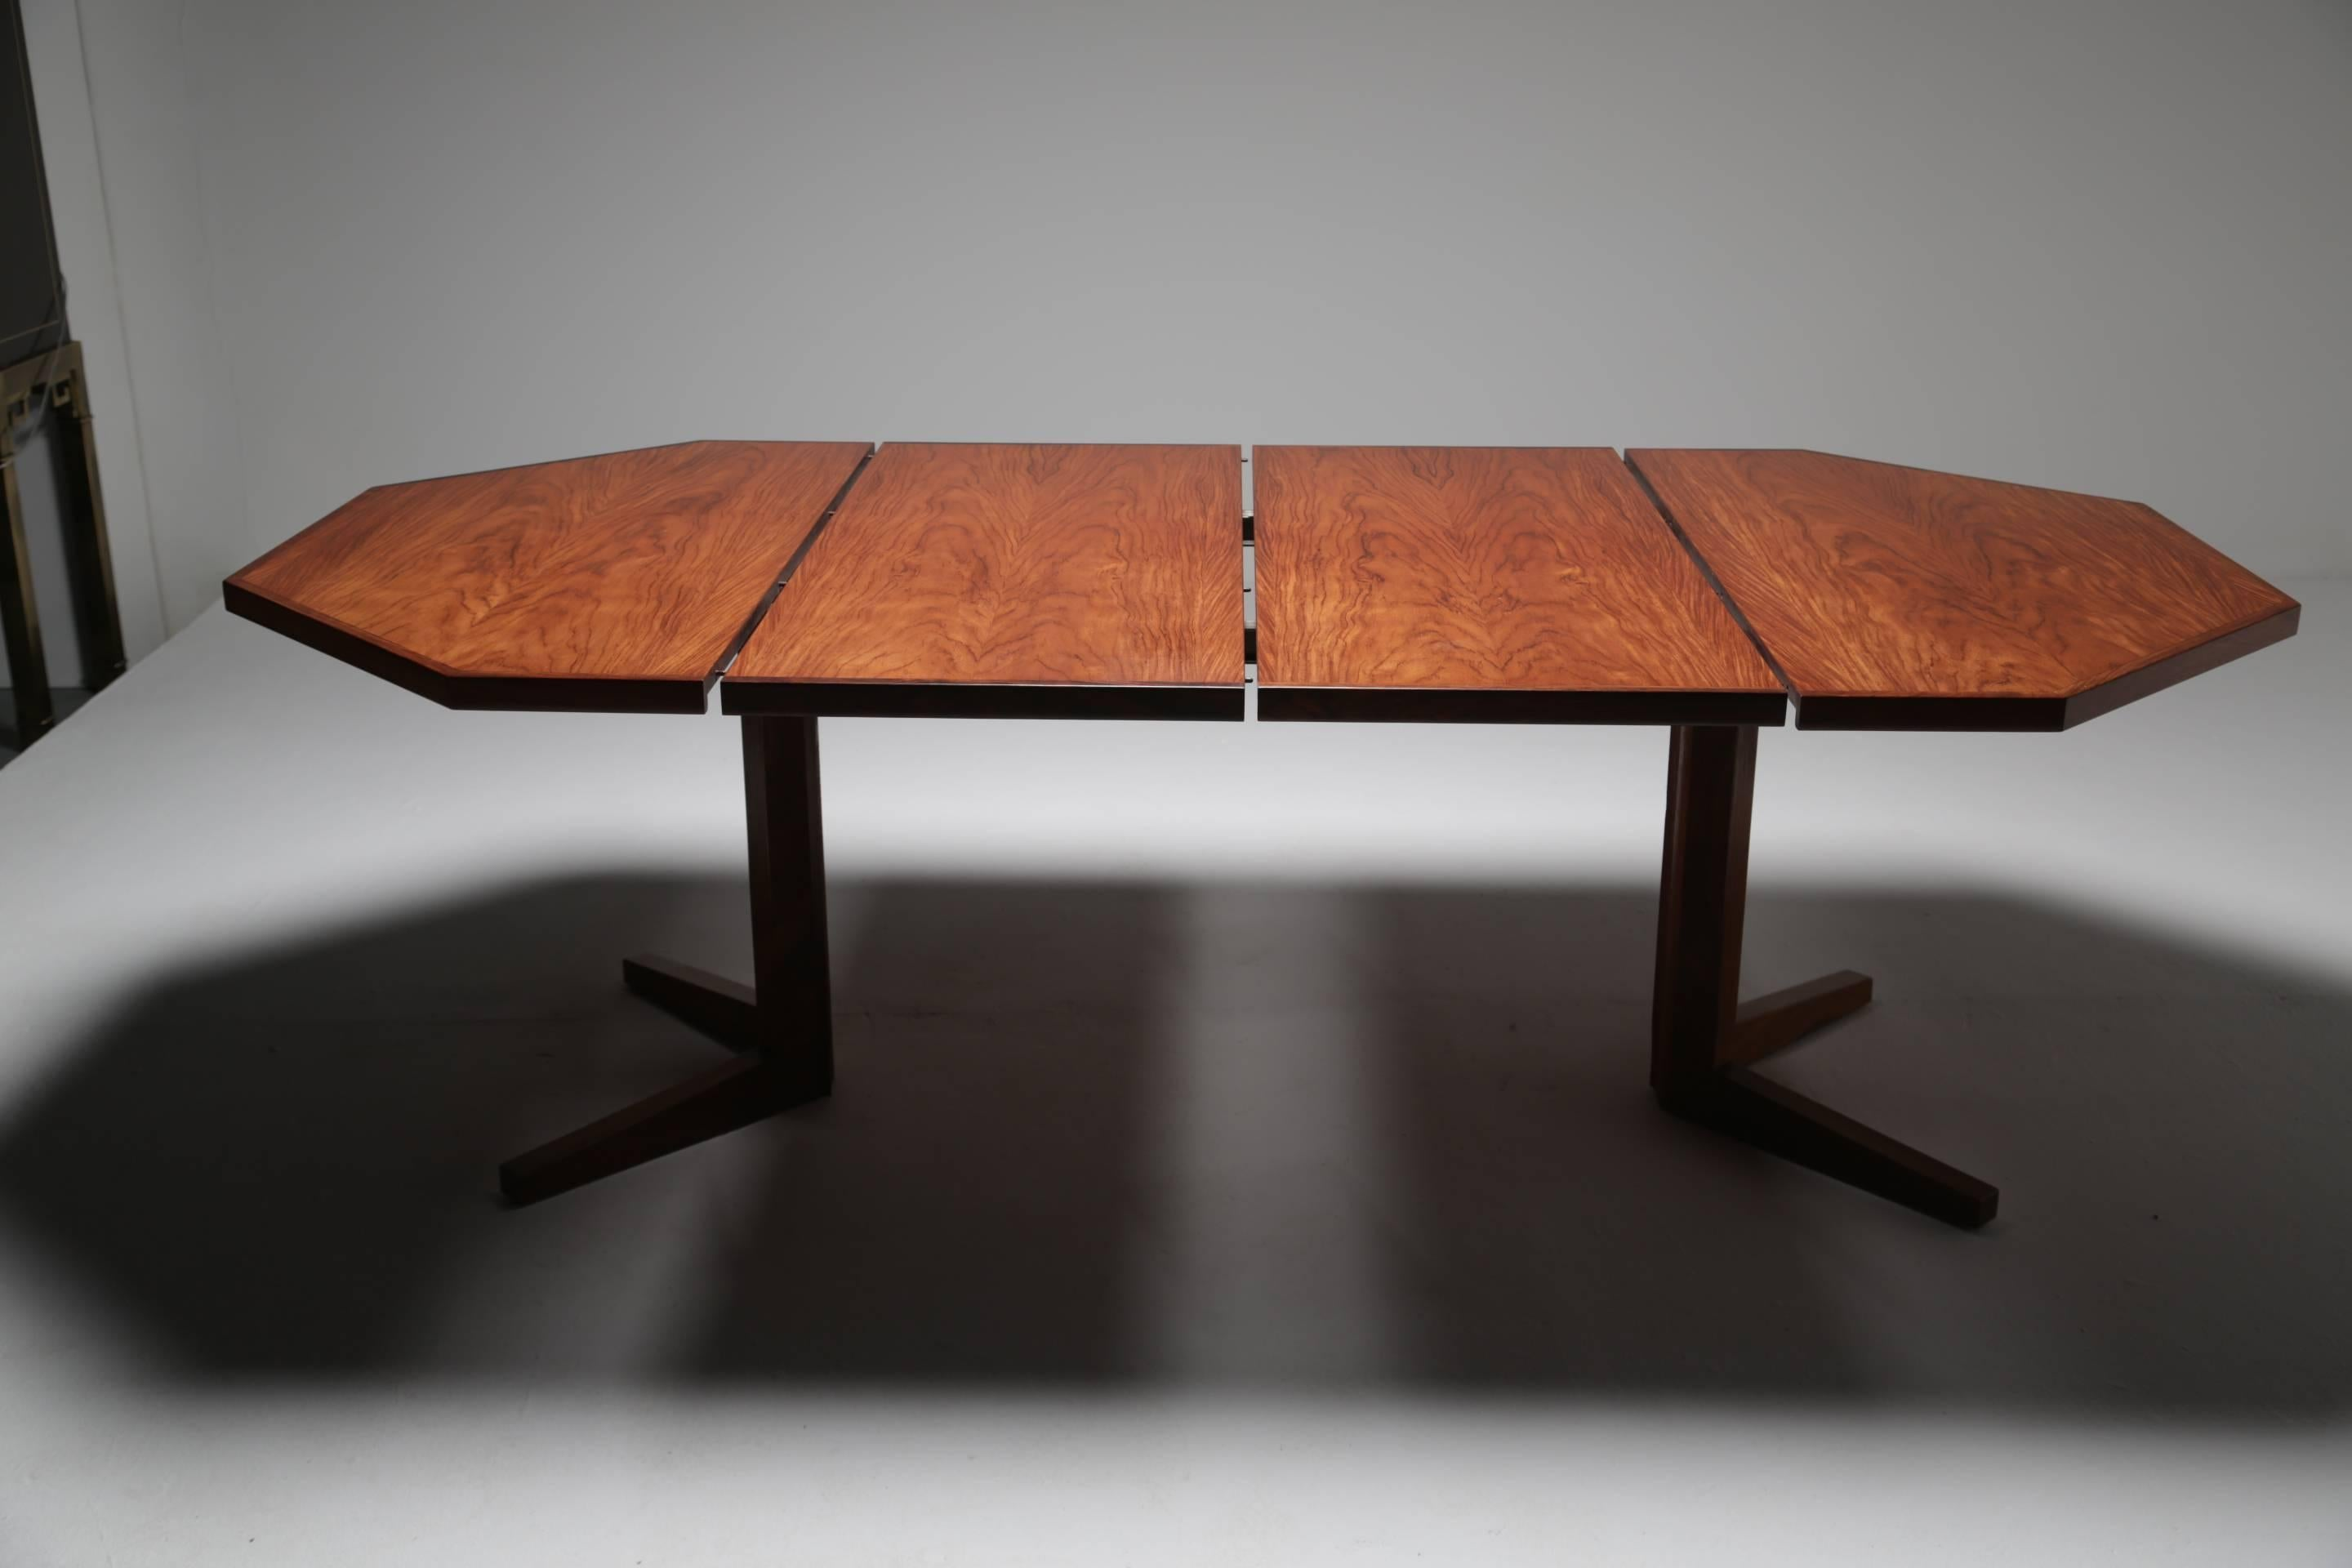 An Unusual Vintage Rosewood Dining Table Made By The Danish Factory  Dyrlund. This Midcentury Dining